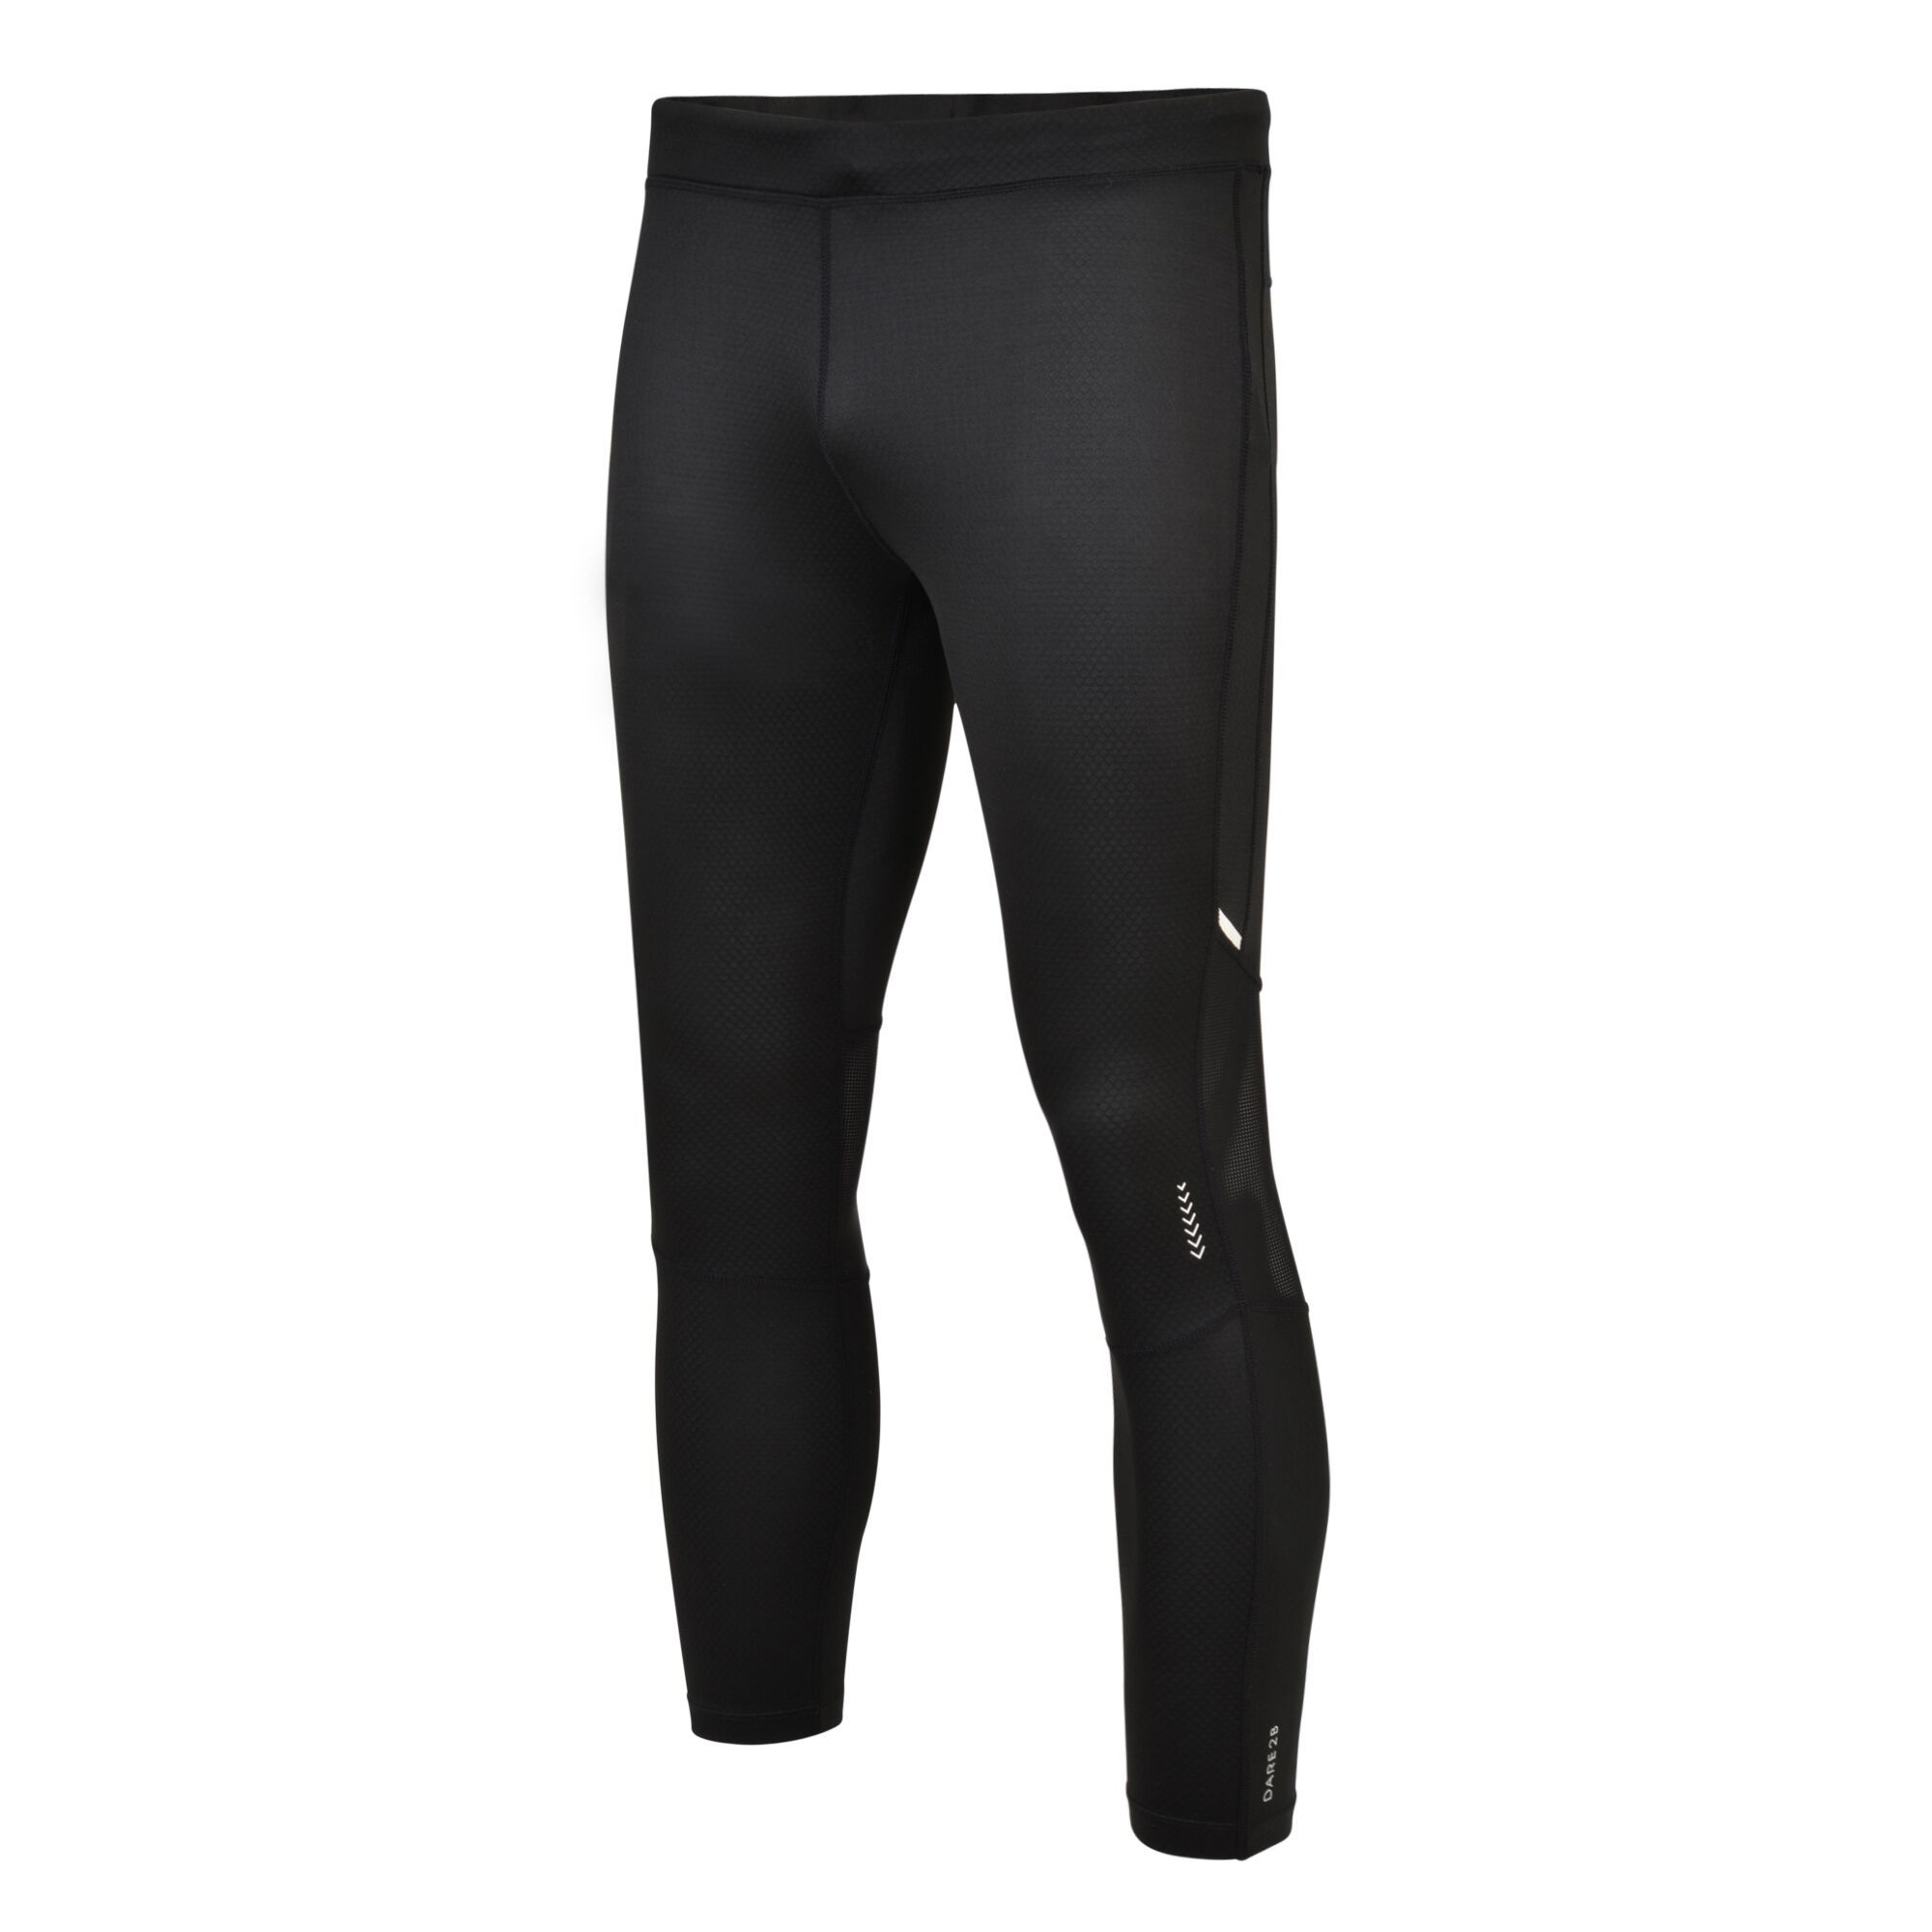 running leggings and tights